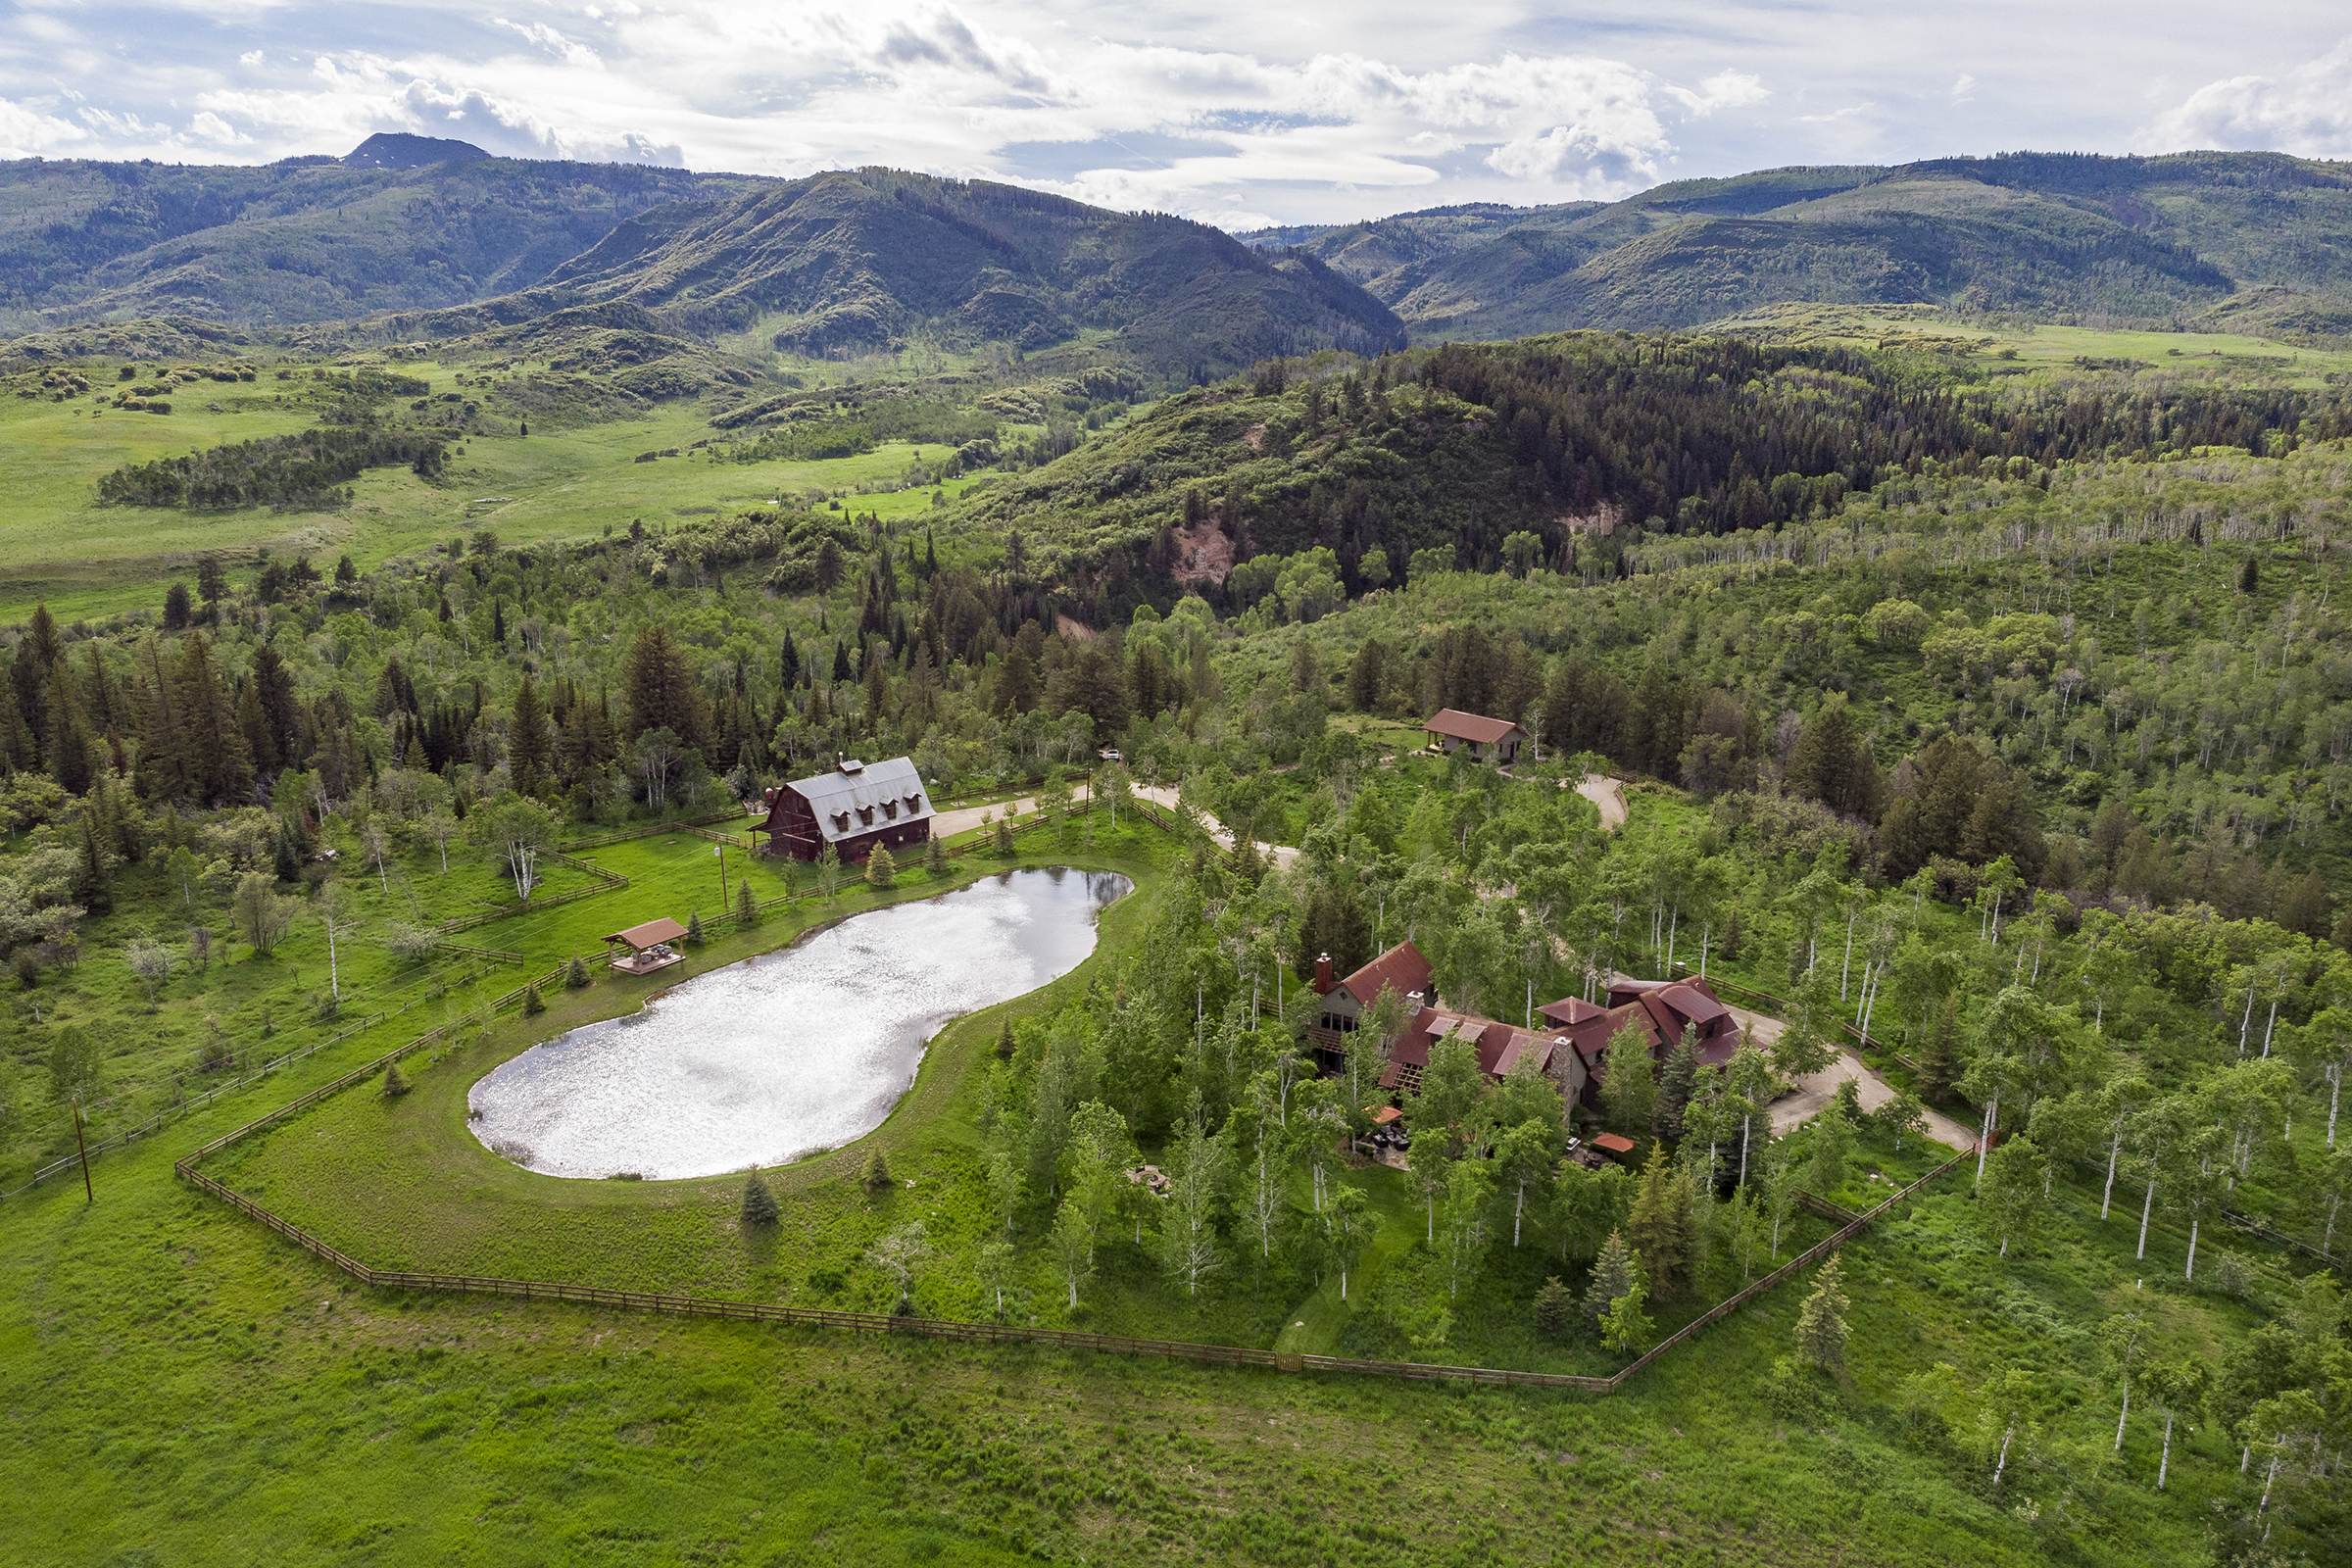 Casa unifamiliar en venta en/de 50430 COUNTY ROAD 56A, Steamboat Springs, Colorado ,80487  , EUA